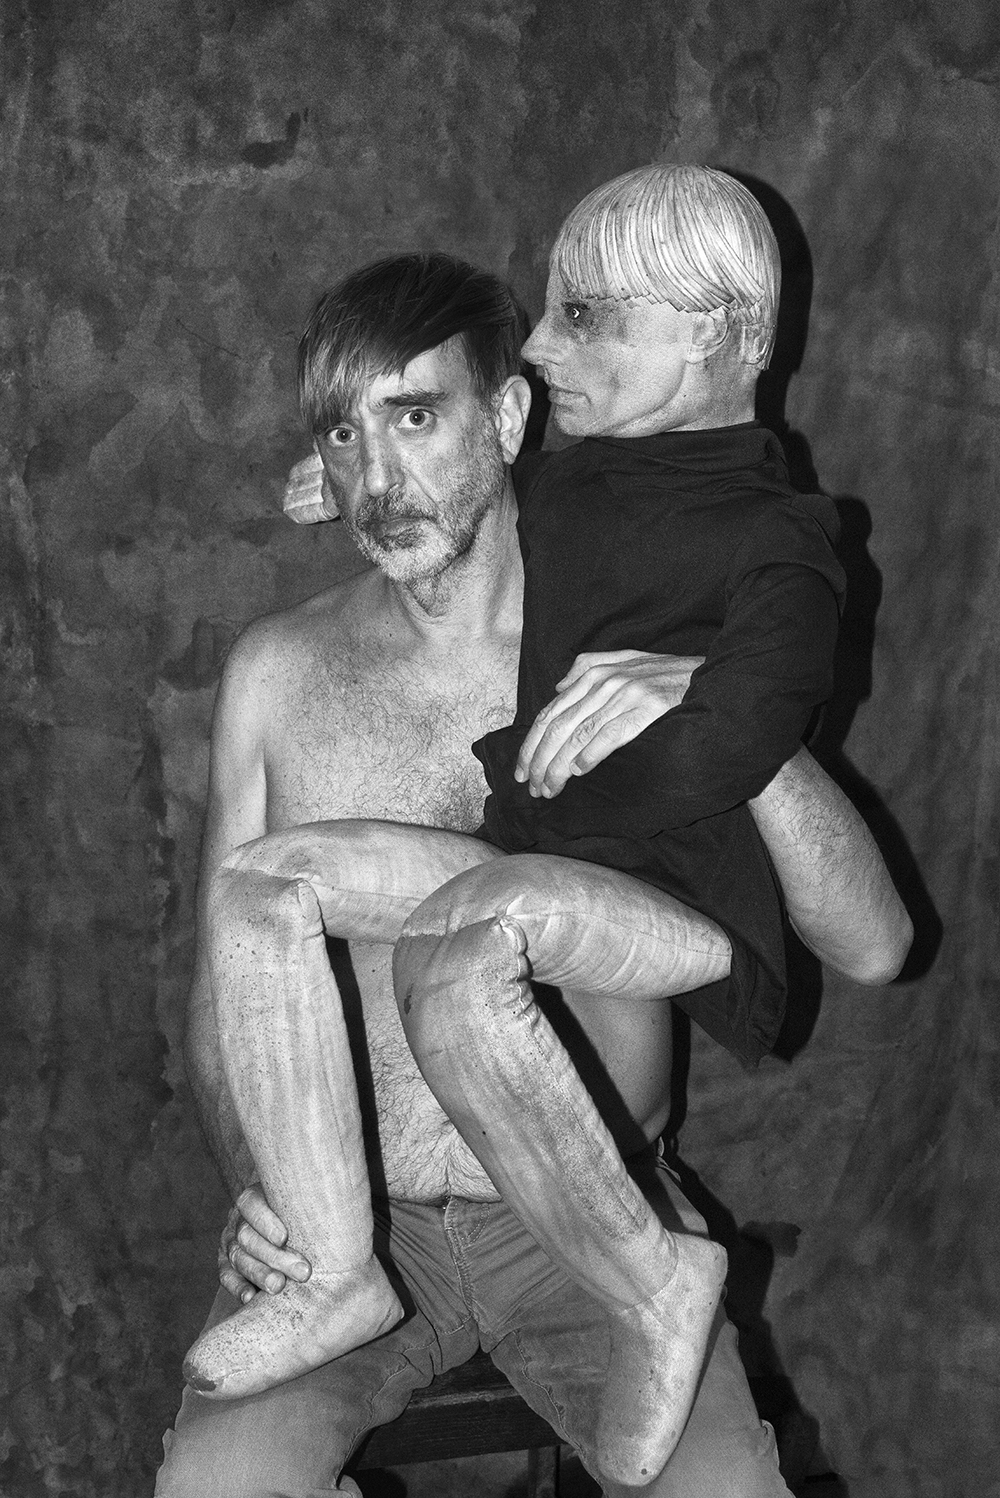 Roger Ballen and Asger Carlsen, Ballen and Carlsen, 2016. Archival pigment print on Hahnemuhle photo rag pearl paper, framed. 60 x 40 cm. Edition of 6 + 2 AP.